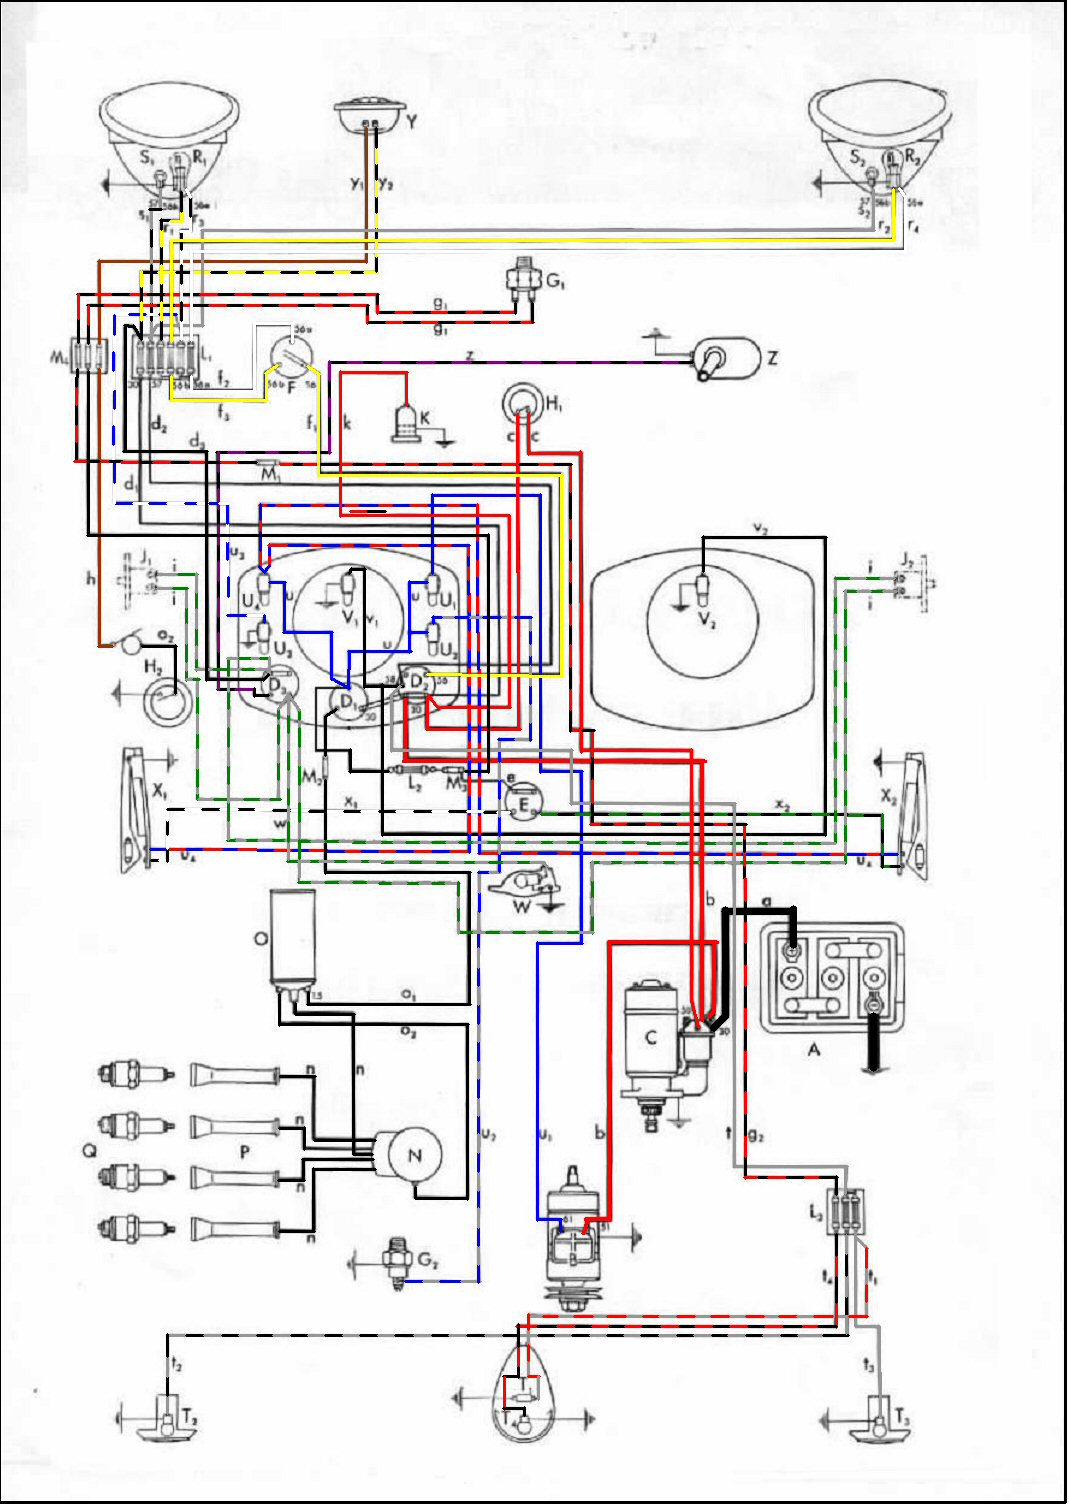 Type 1 Wiring Diagrams 1971 Vw Super Beetle Auto Shift Wire Diagram